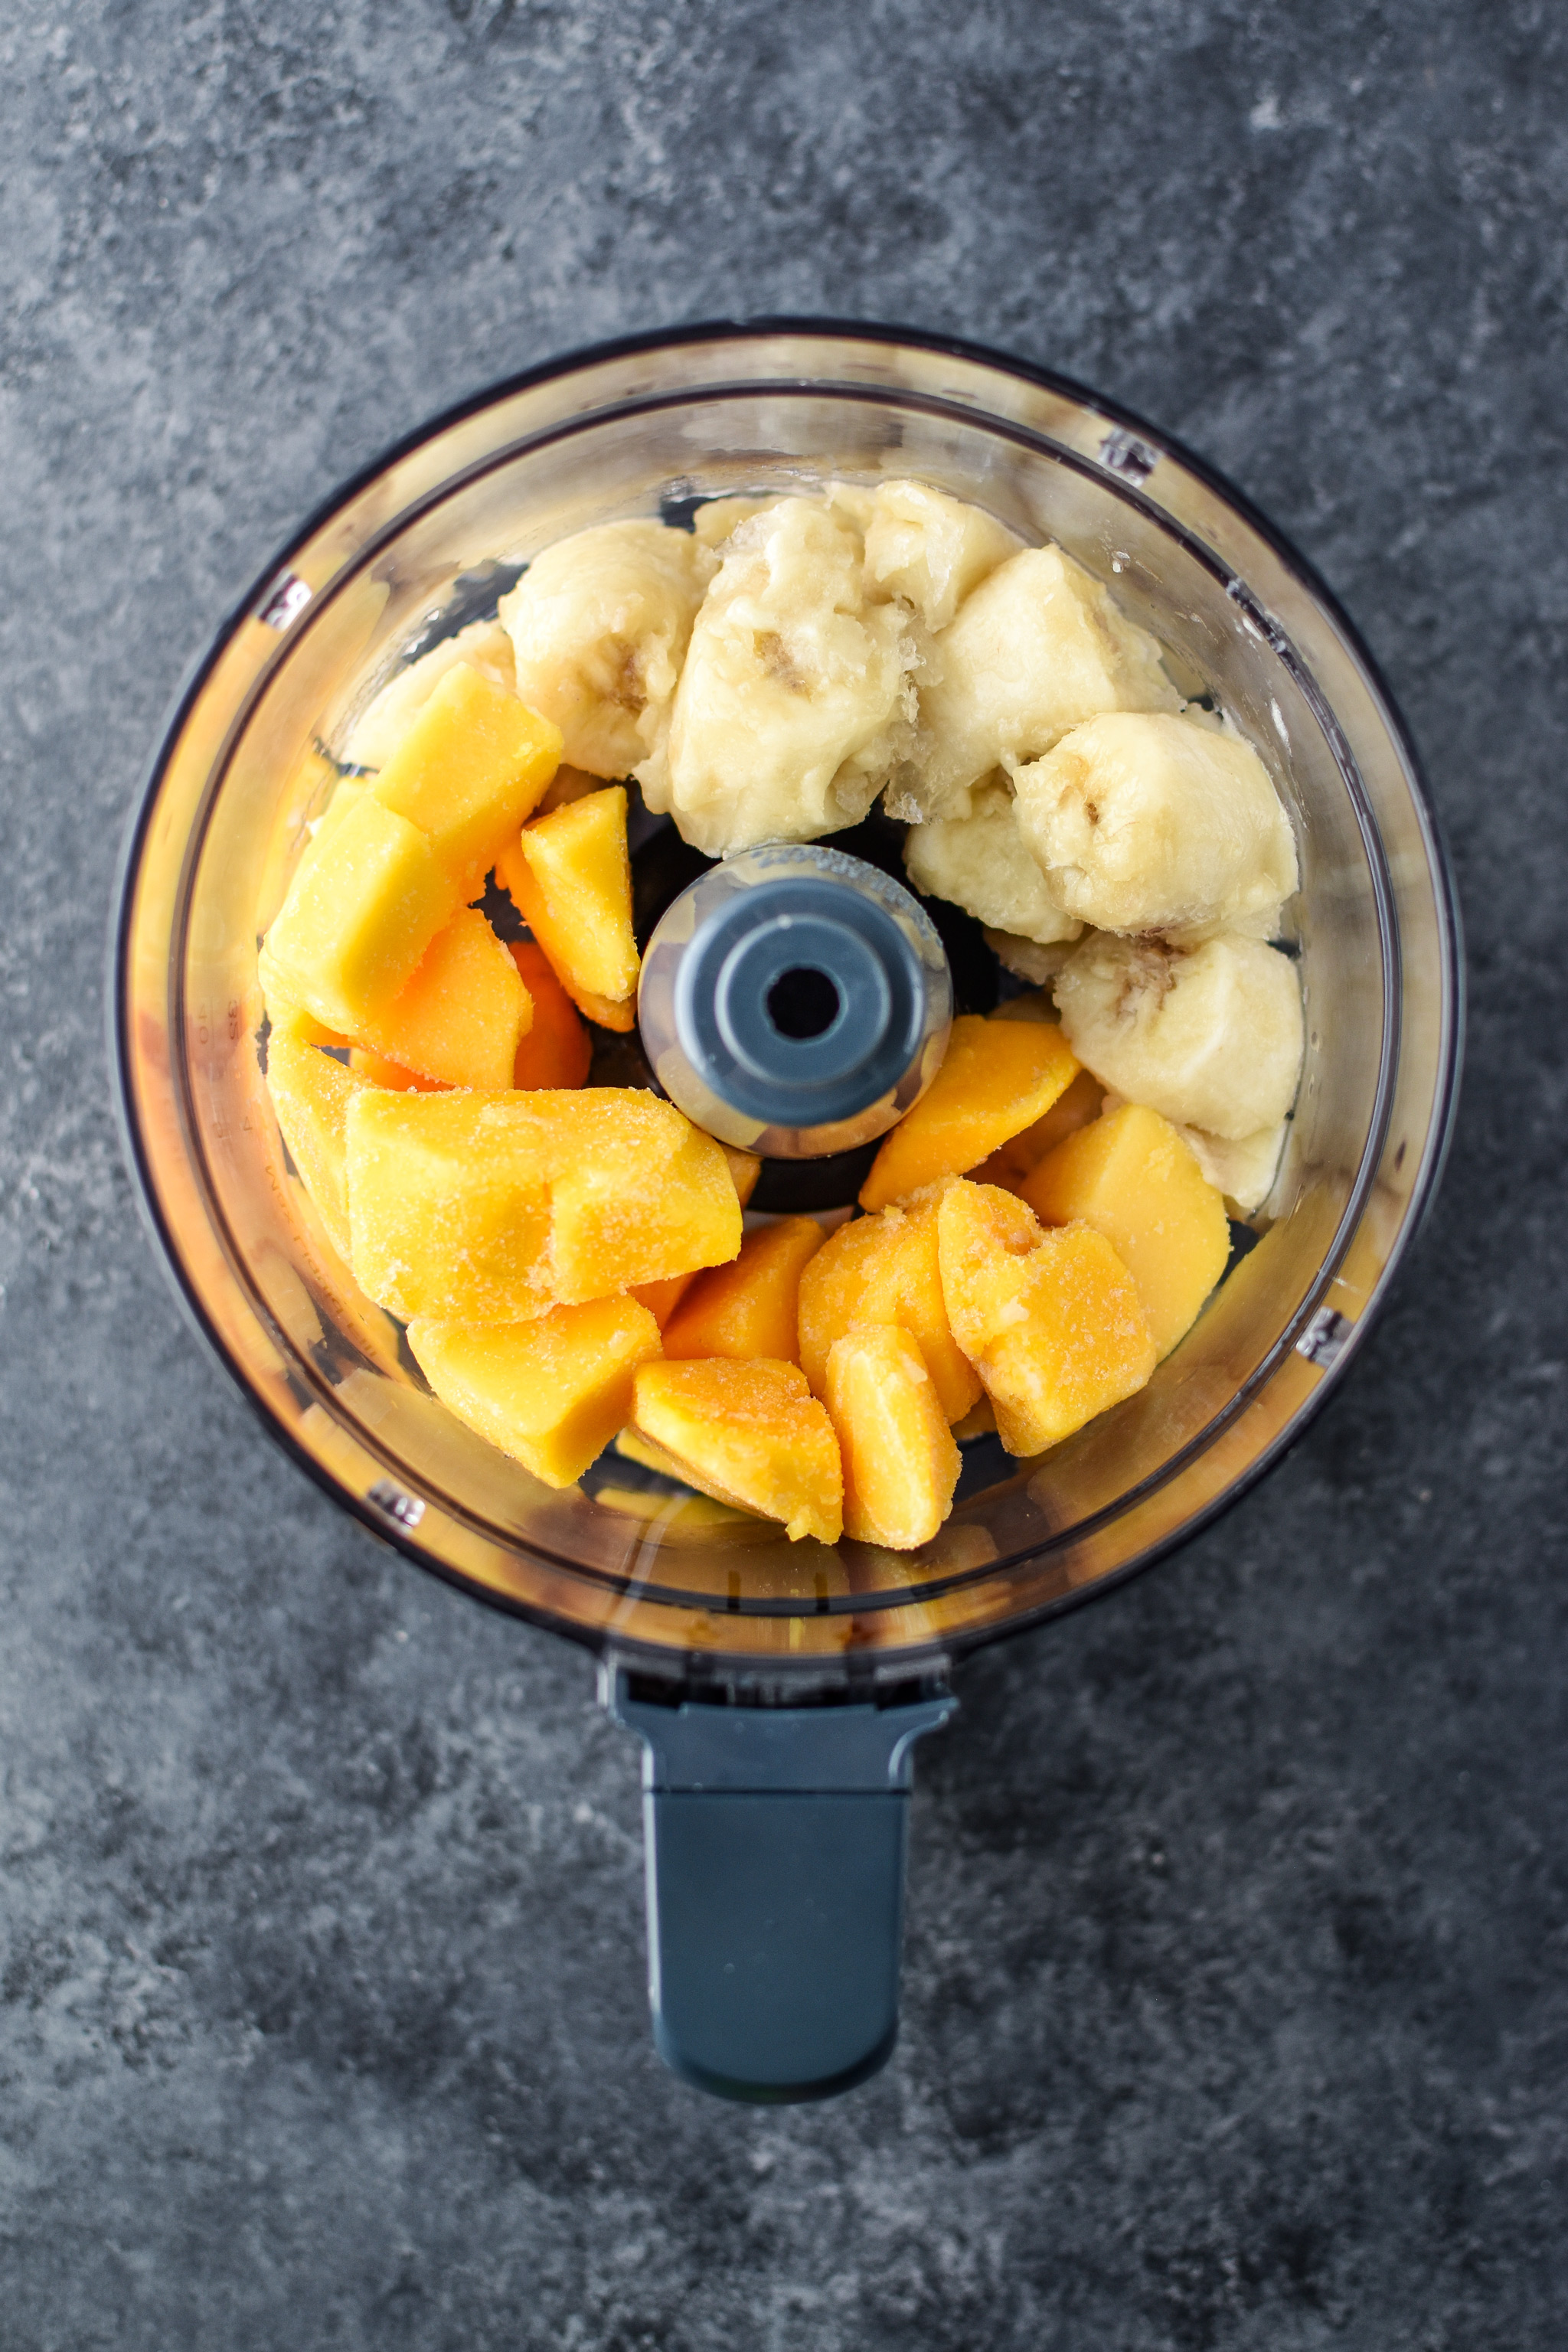 Above view of the ingredients in the food processor to make Mango Lime Nice Cream.